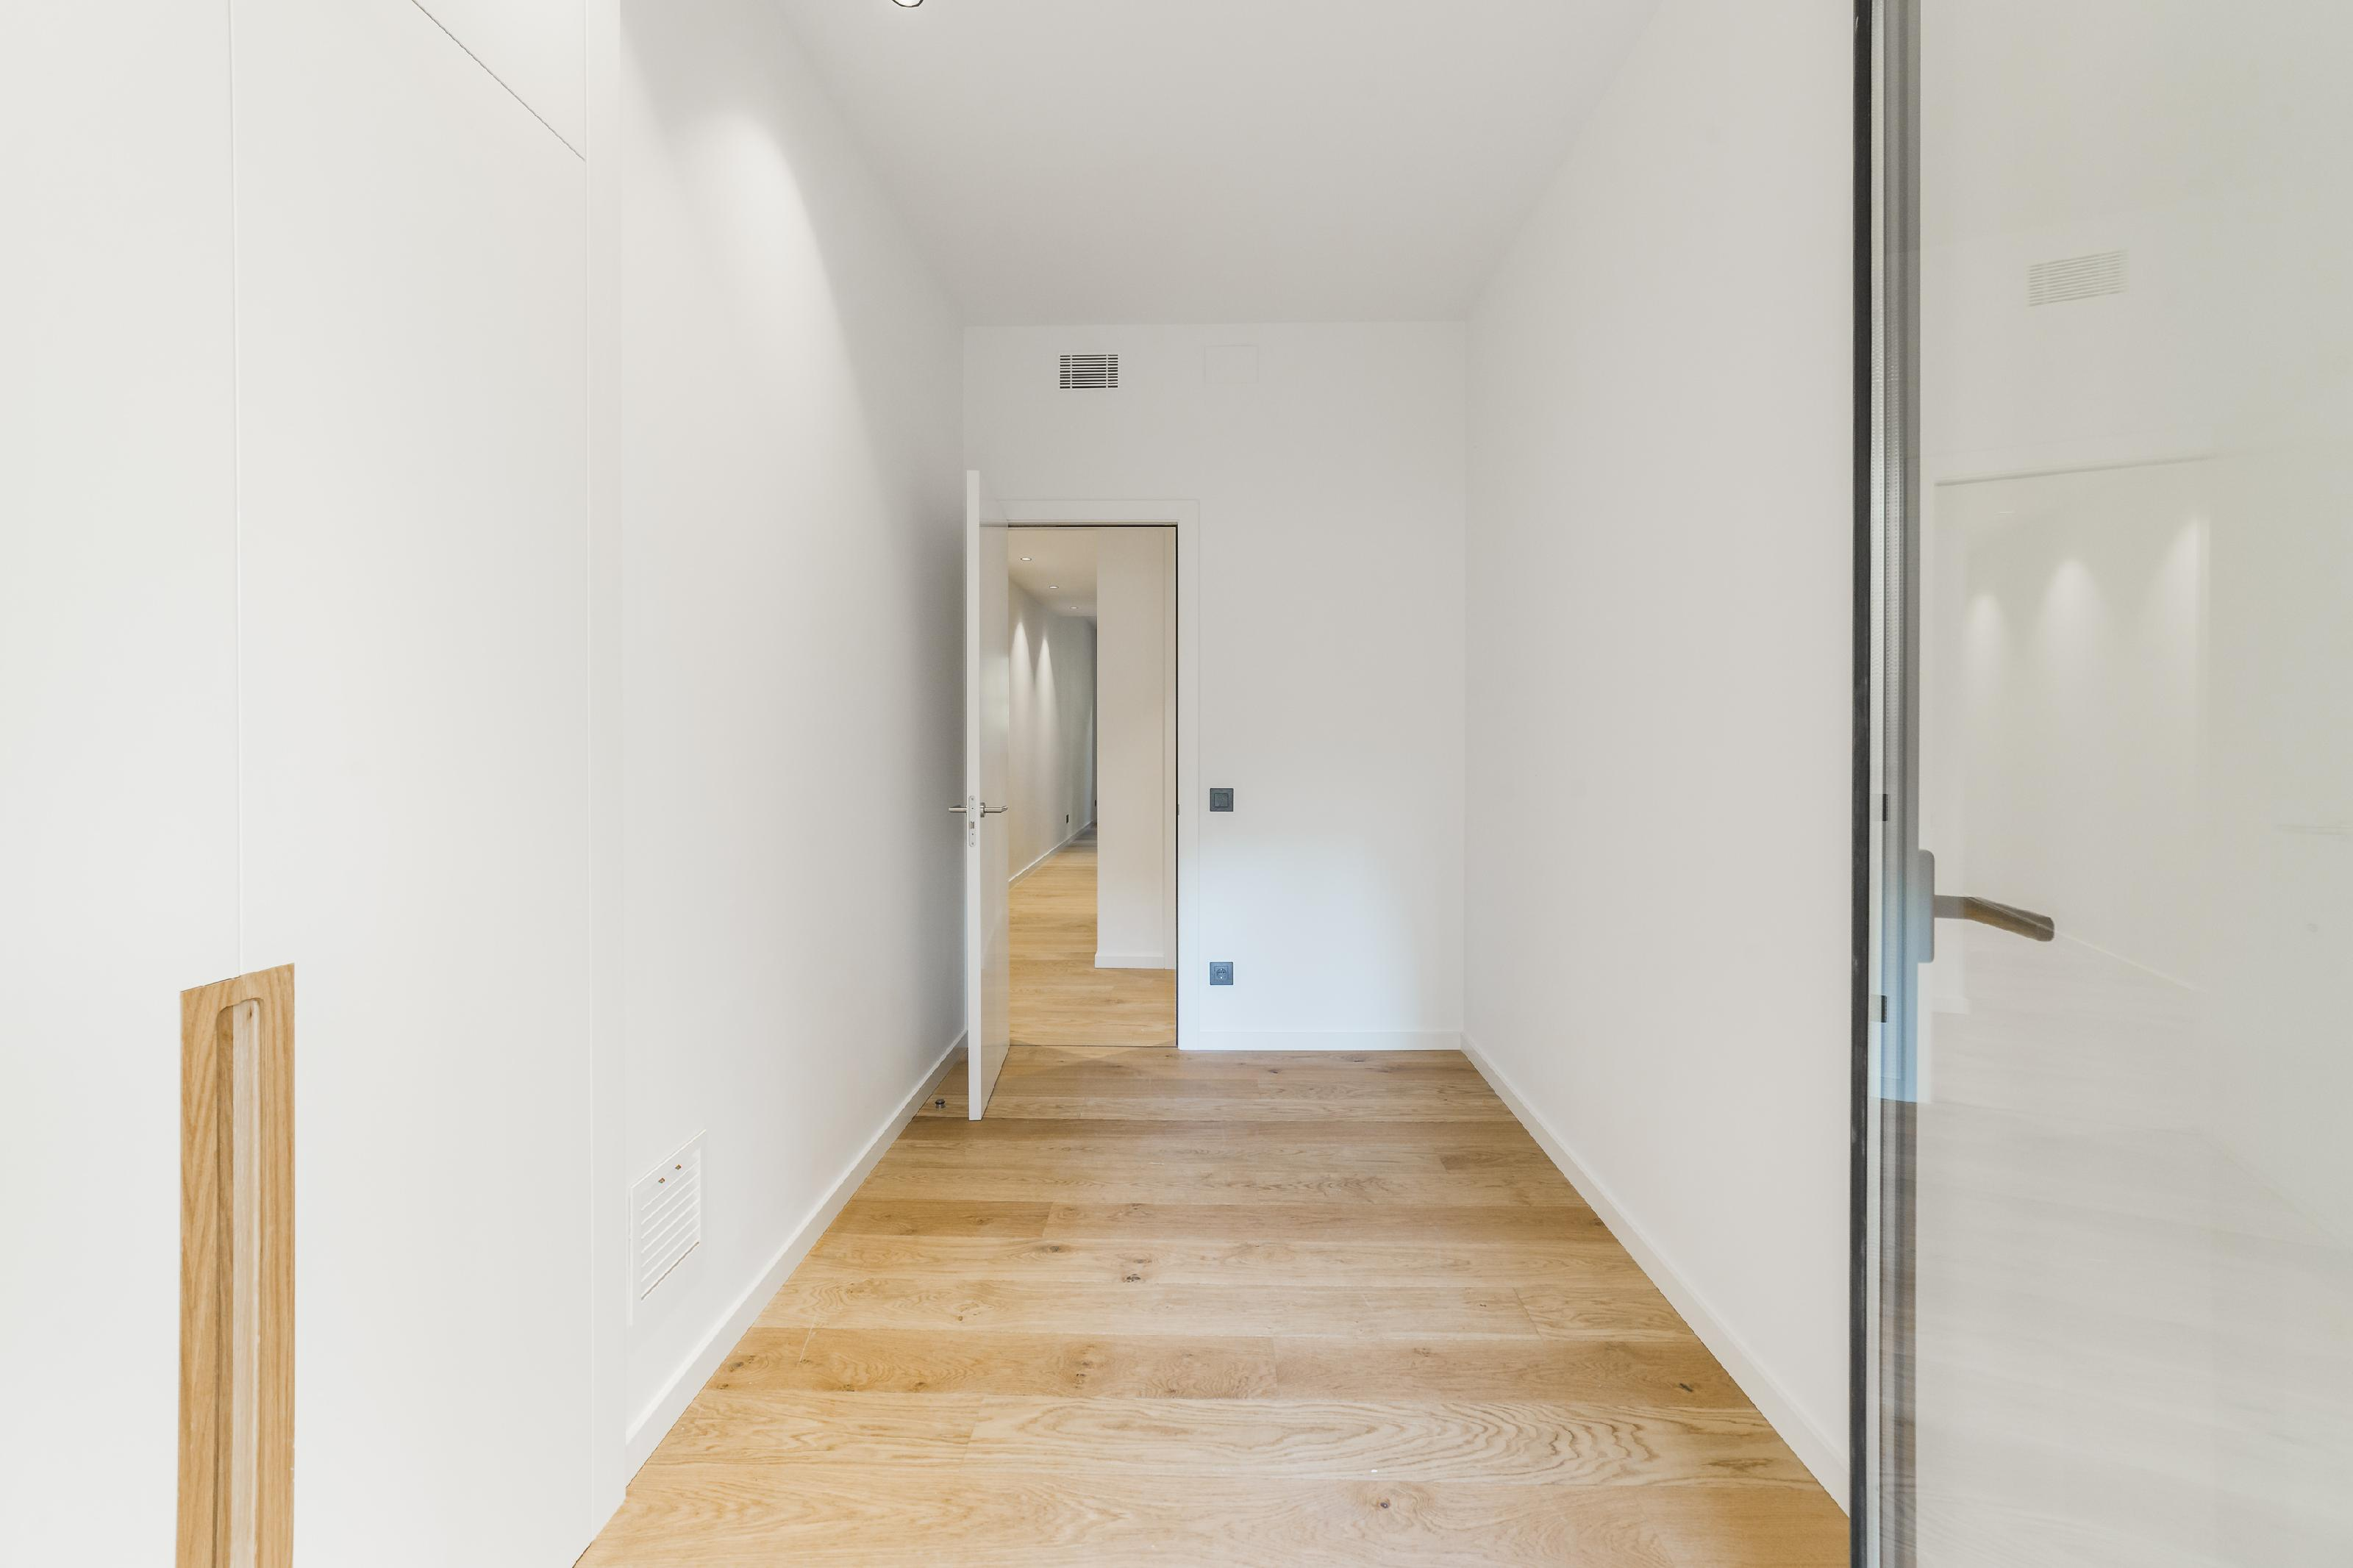 182176 Apartment for sale in Eixample, Old Left Eixample 24